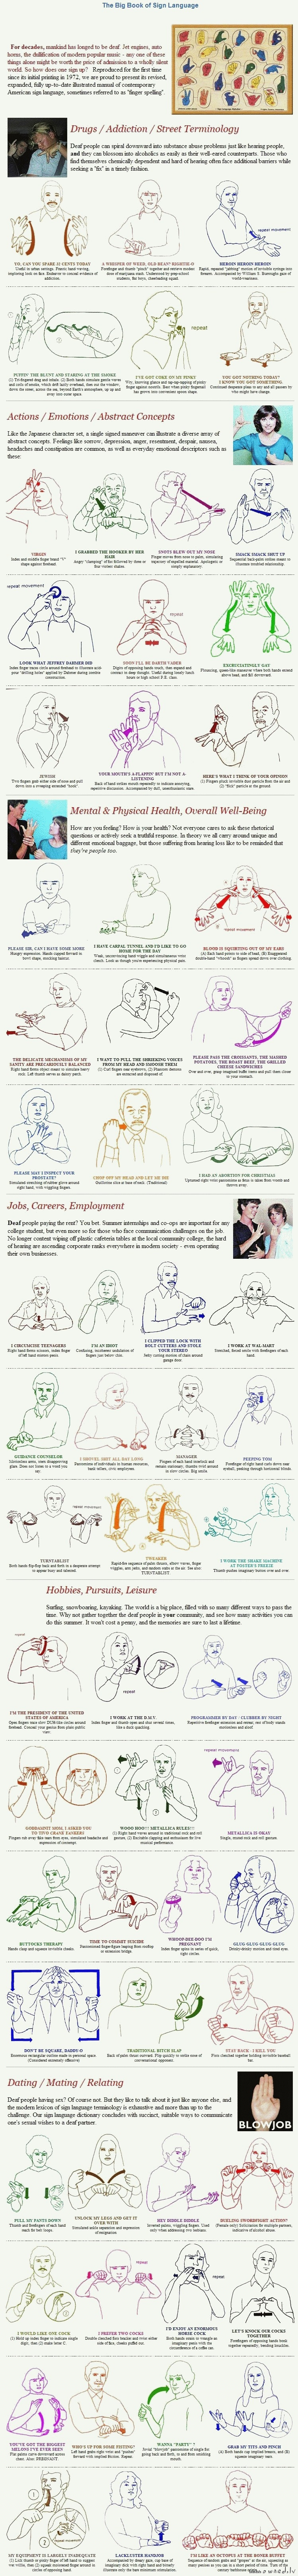 The big book of sign language